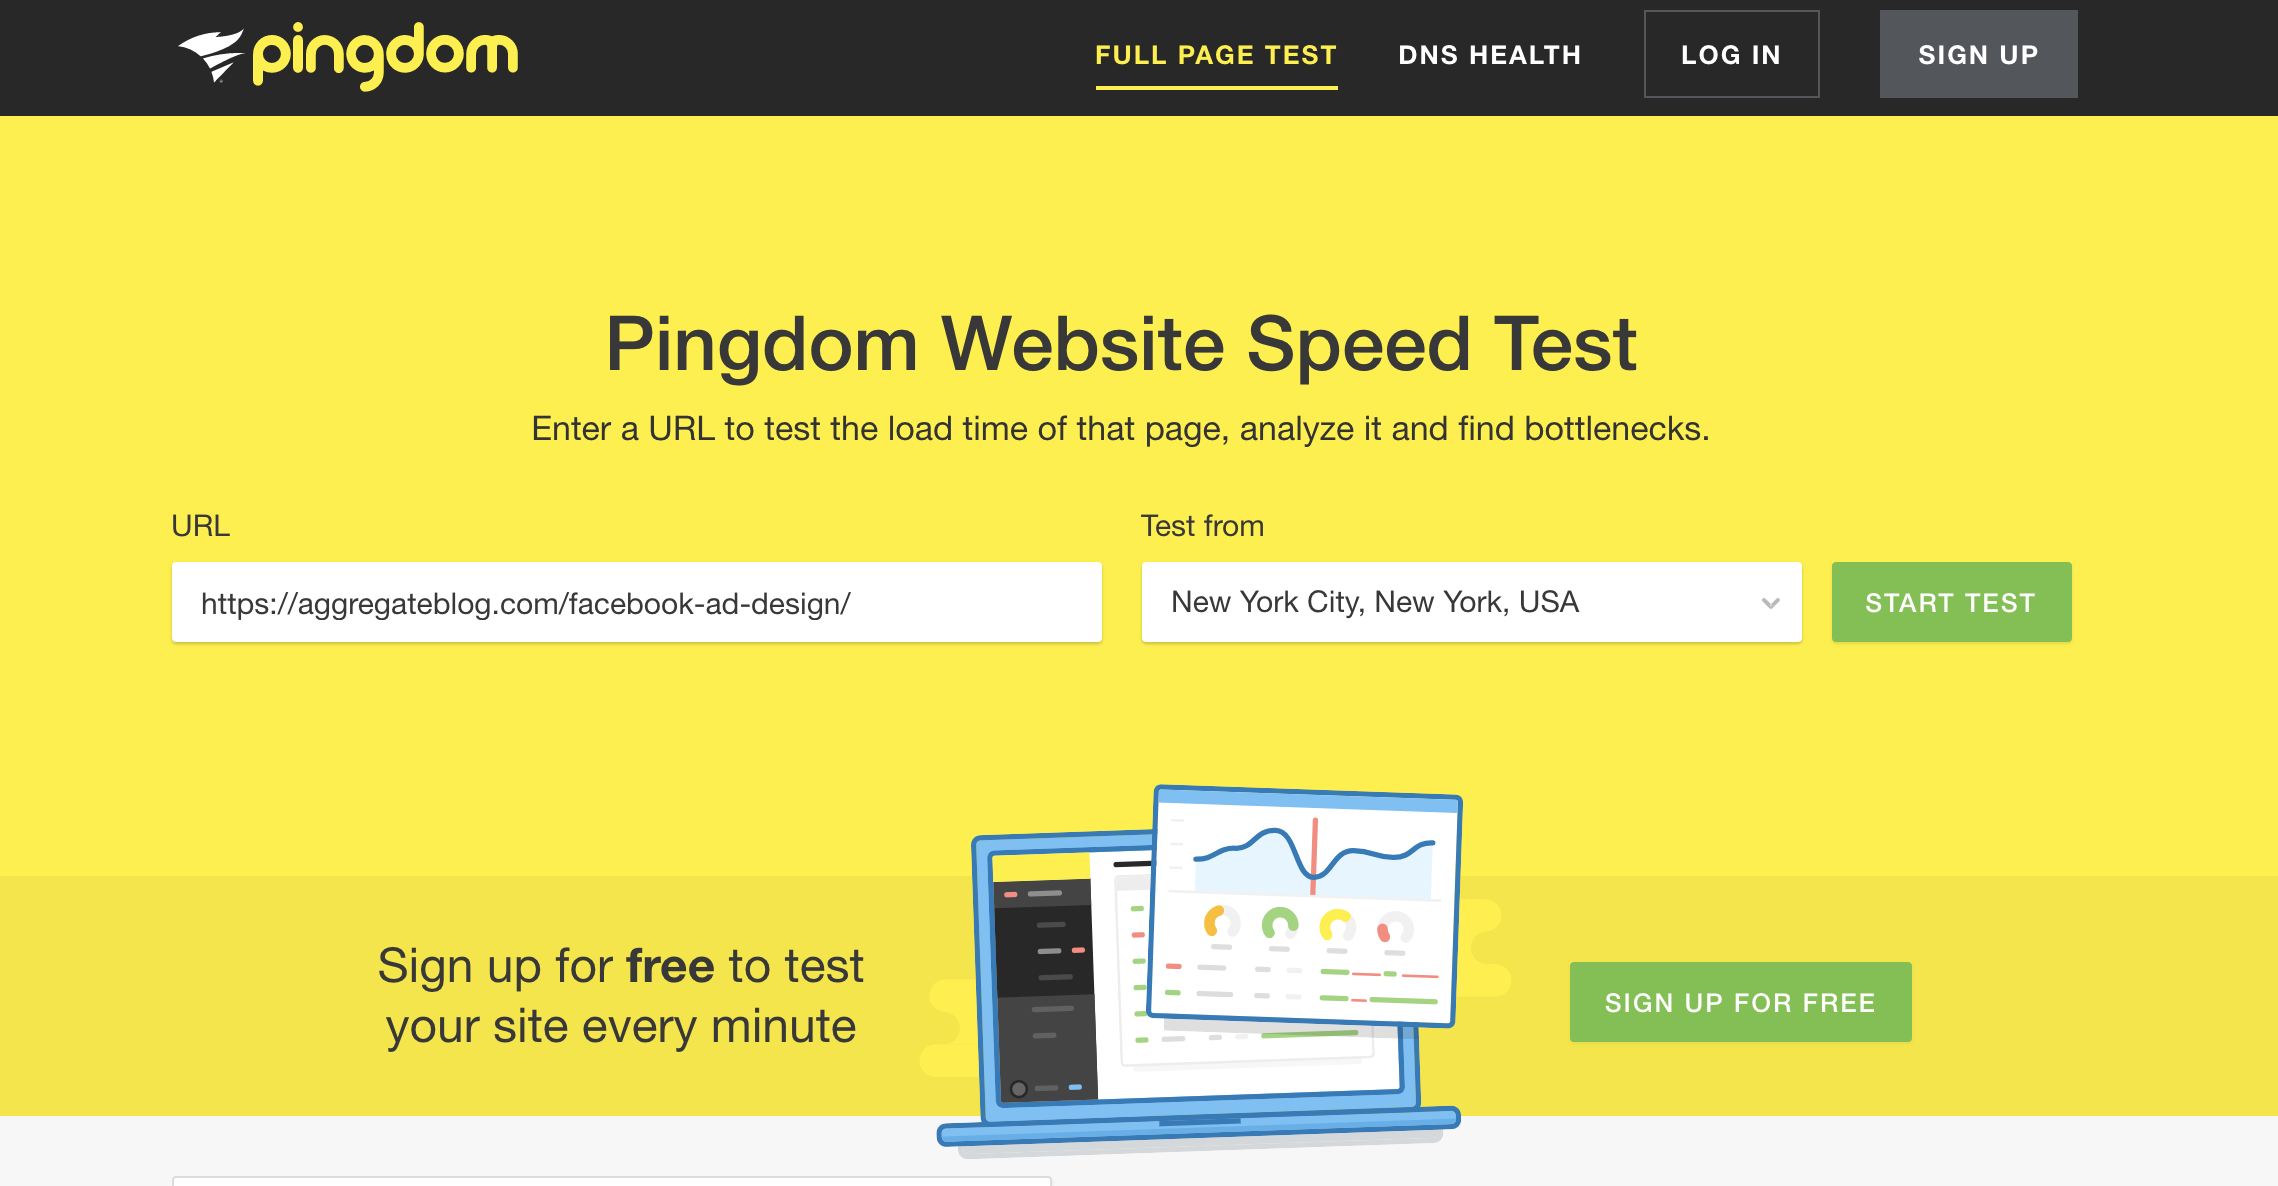 Check your page loading speed with Pingdom